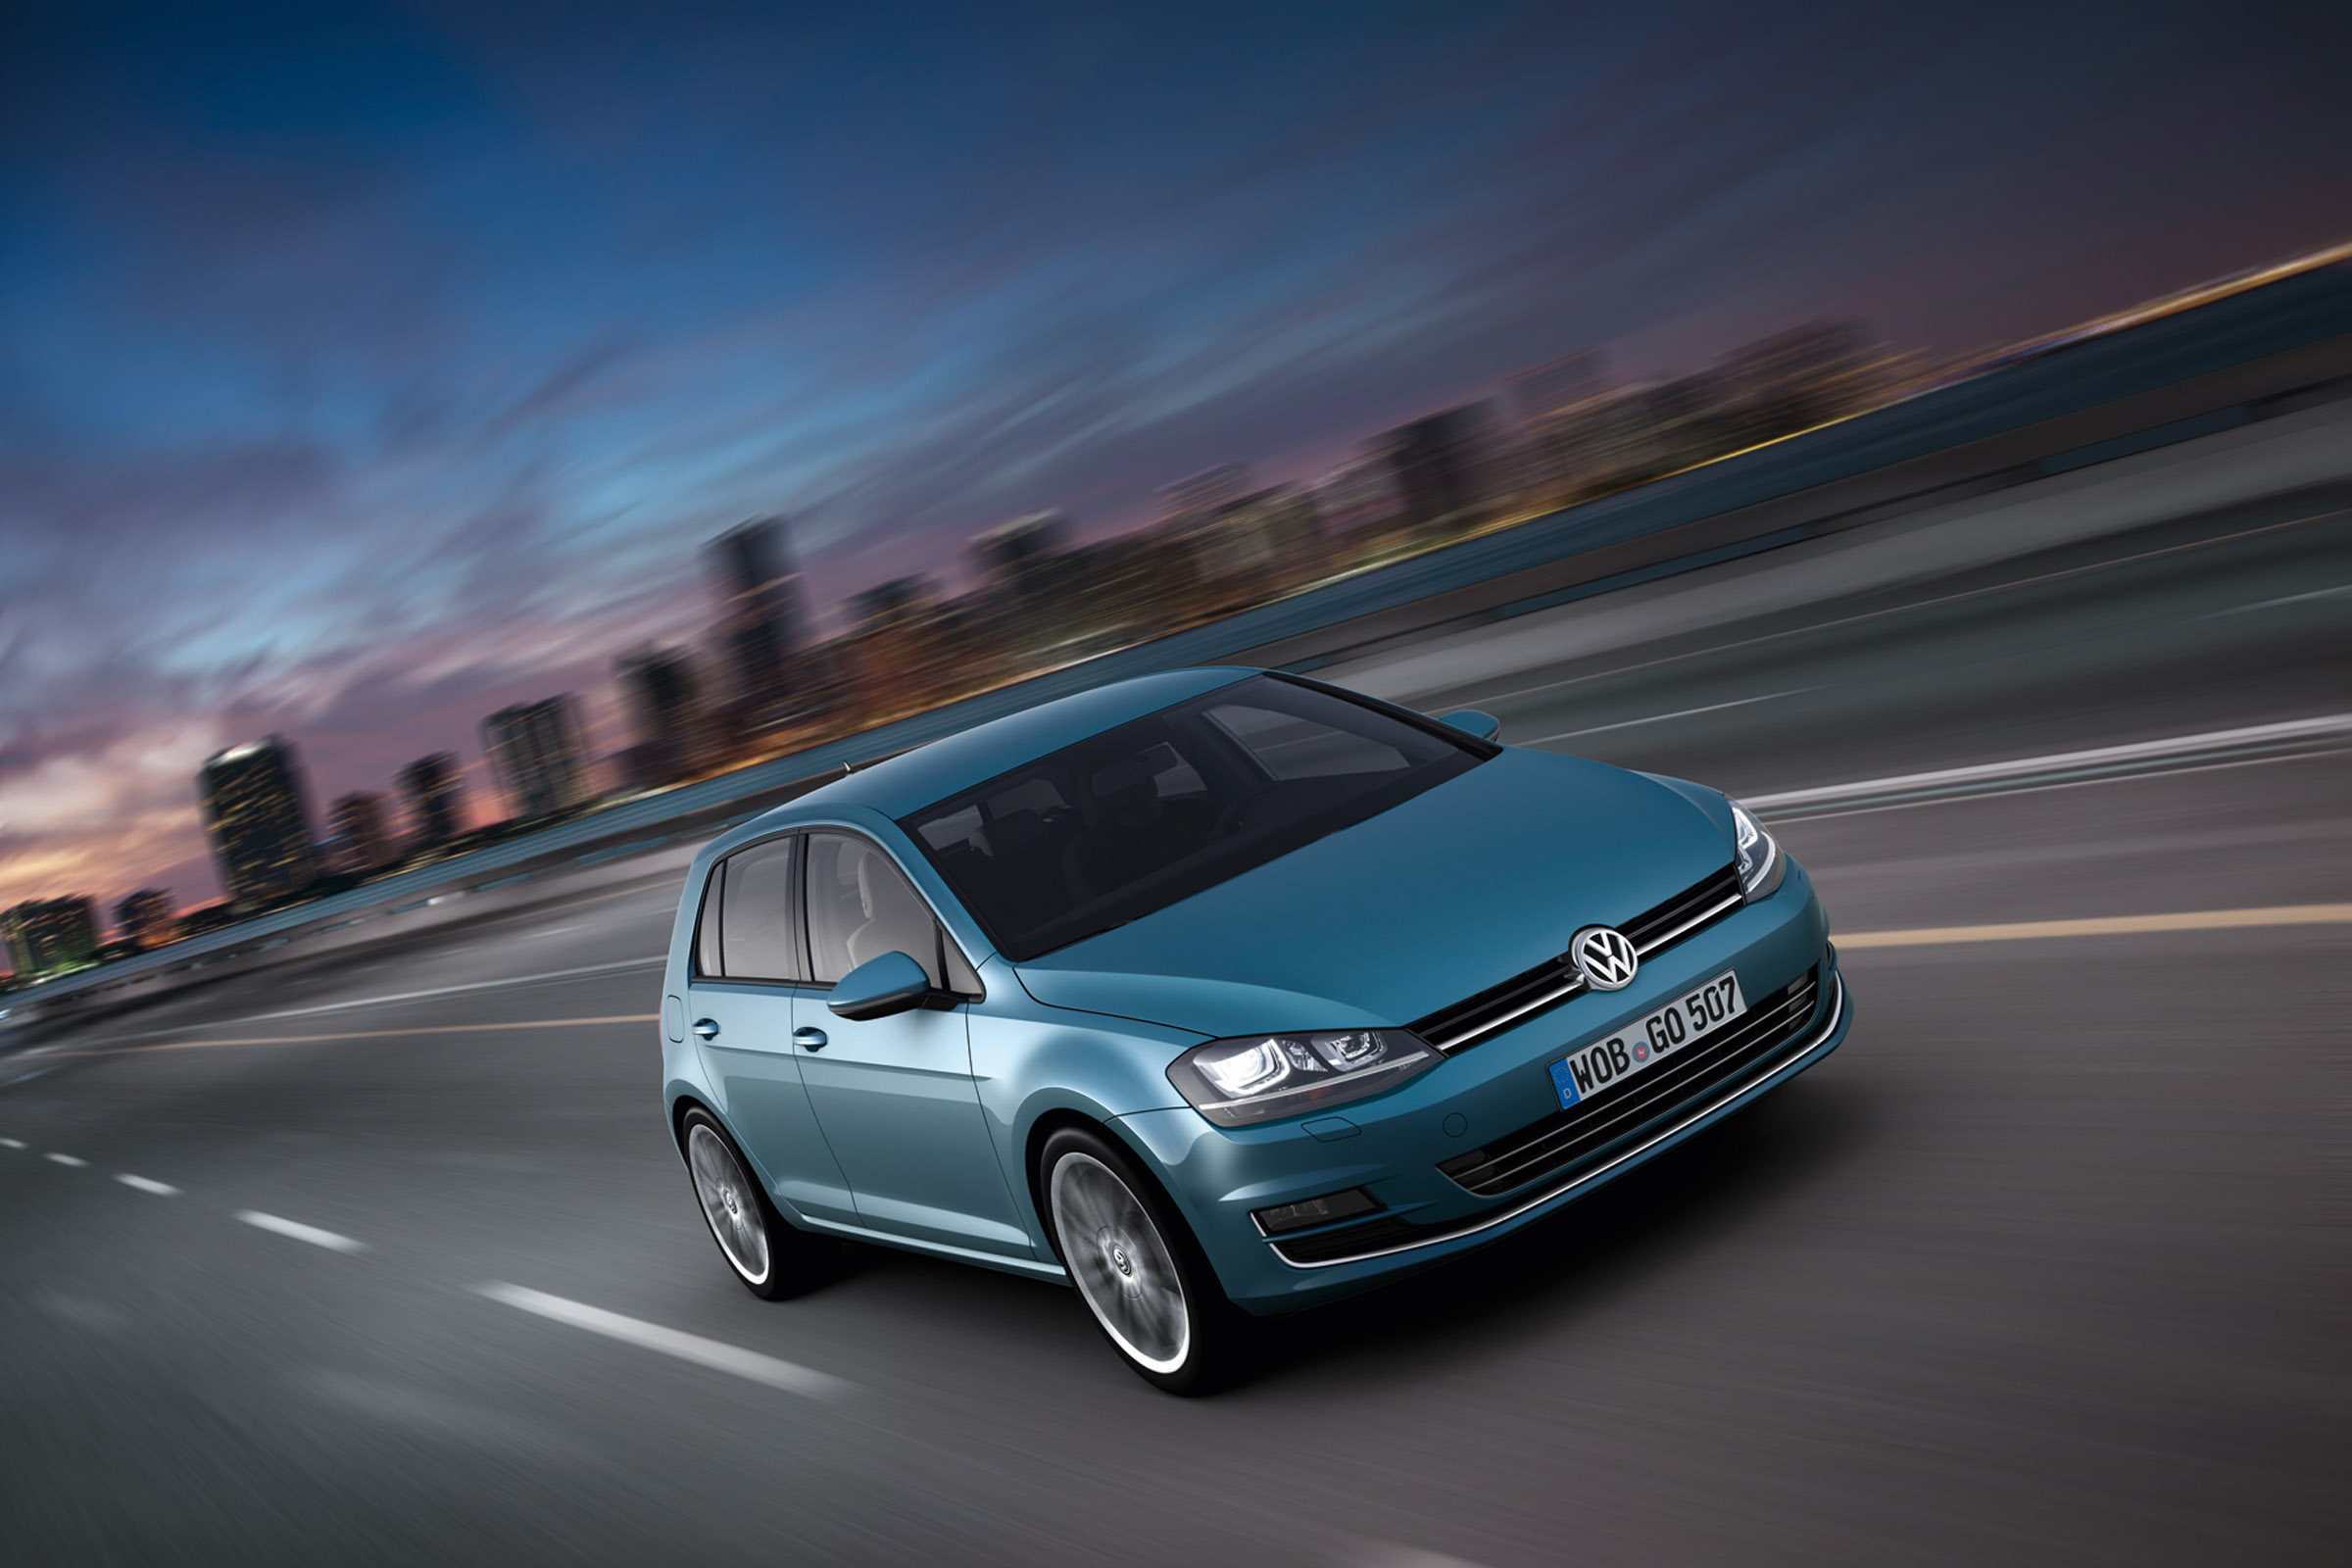 2013 Pacific Blue MK7 Volkswagen Golf Highline